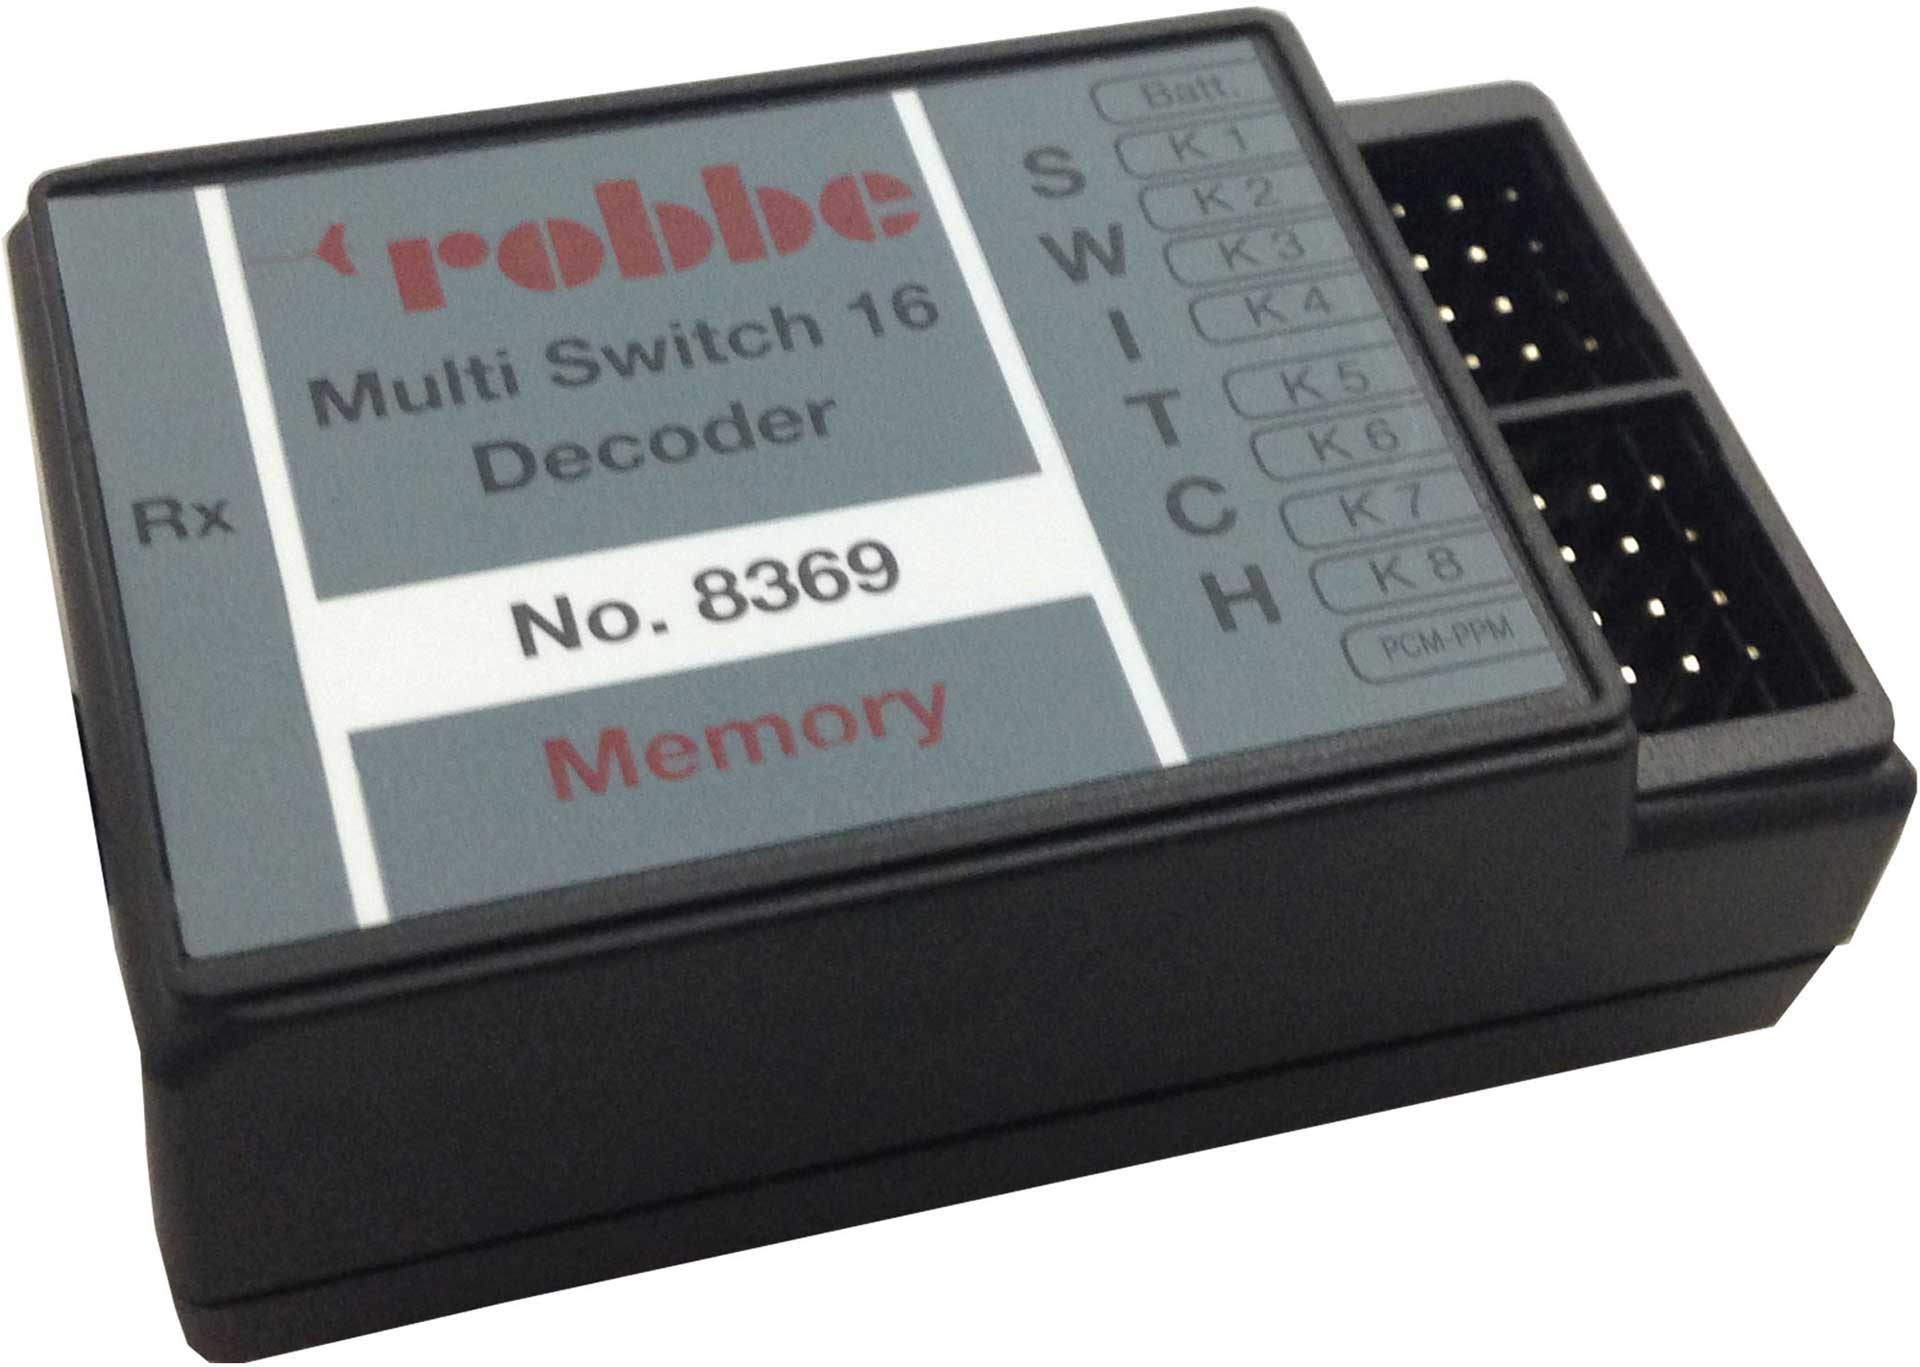 ROBBE MULTI-SWITCH 16 DECODER MEMORY